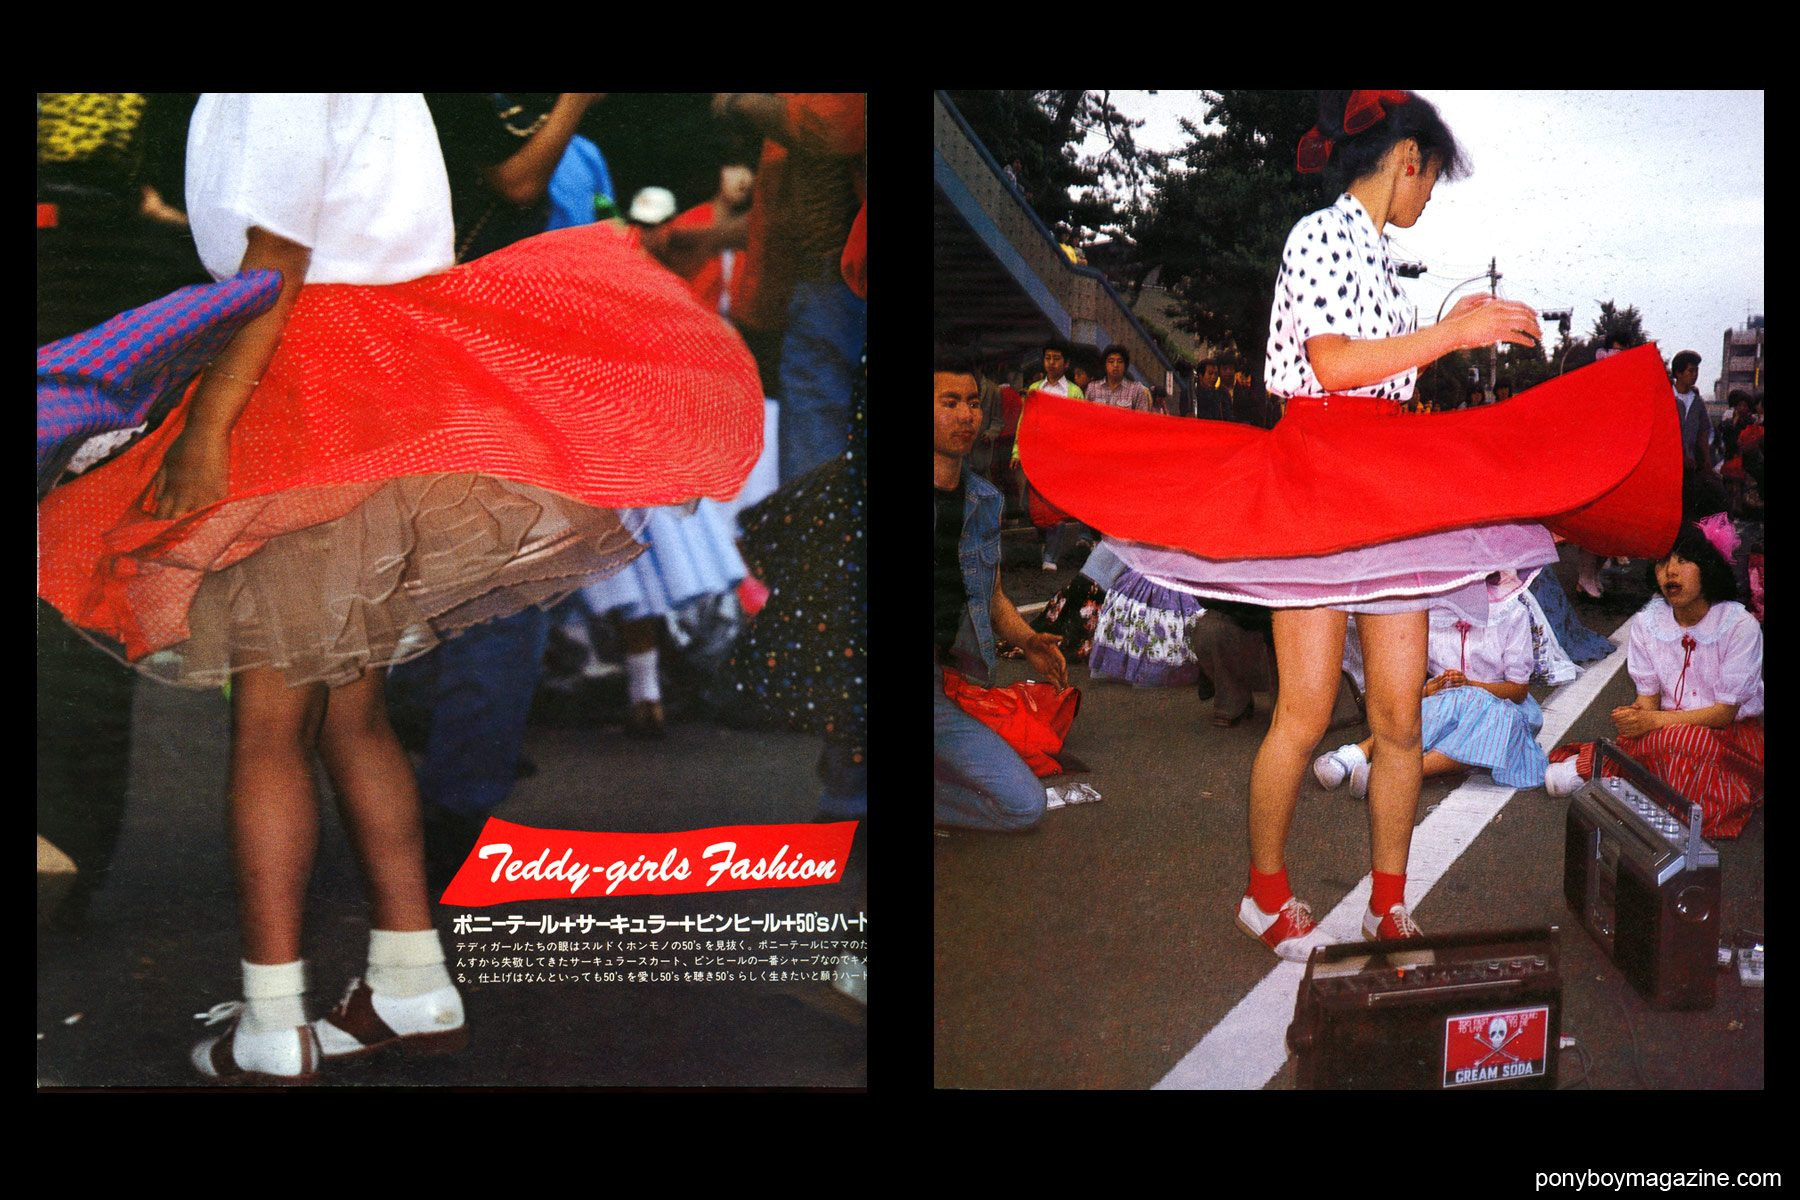 Photos of Japanese girls dancing in full skirts, from the book